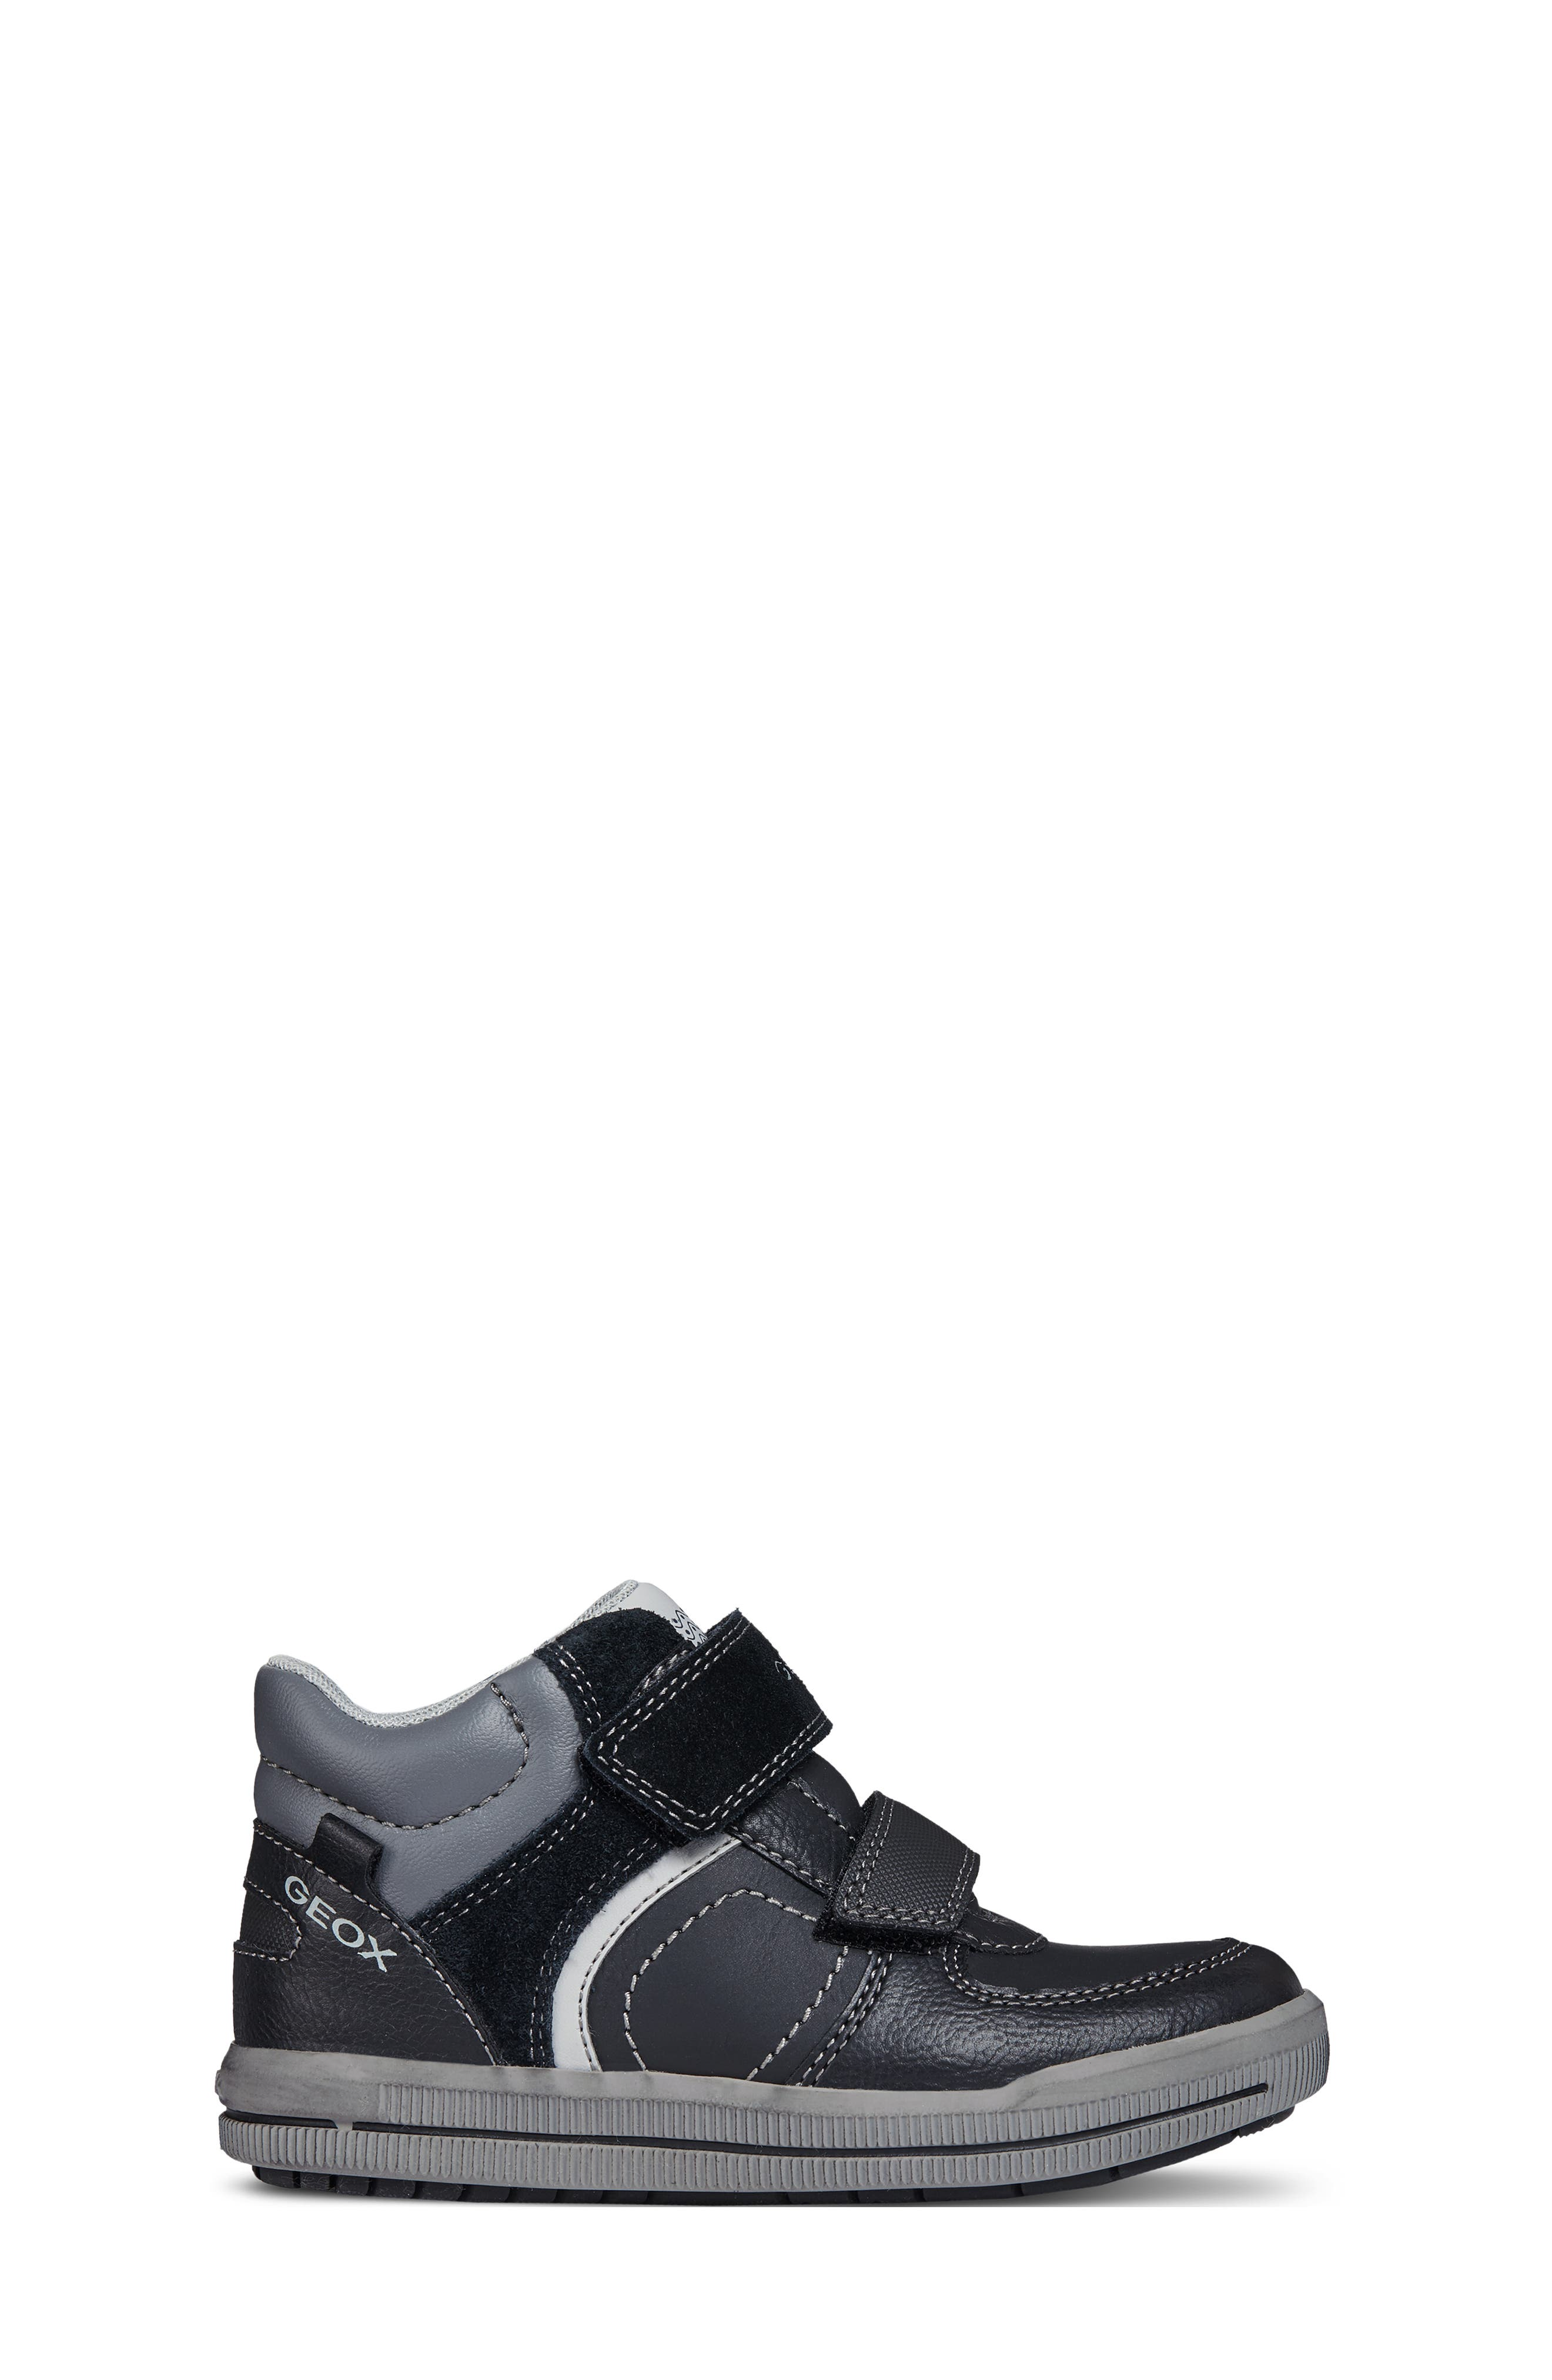 Arzach High-Top Sneaker,                             Alternate thumbnail 3, color,                             BLACK/DARK GREY